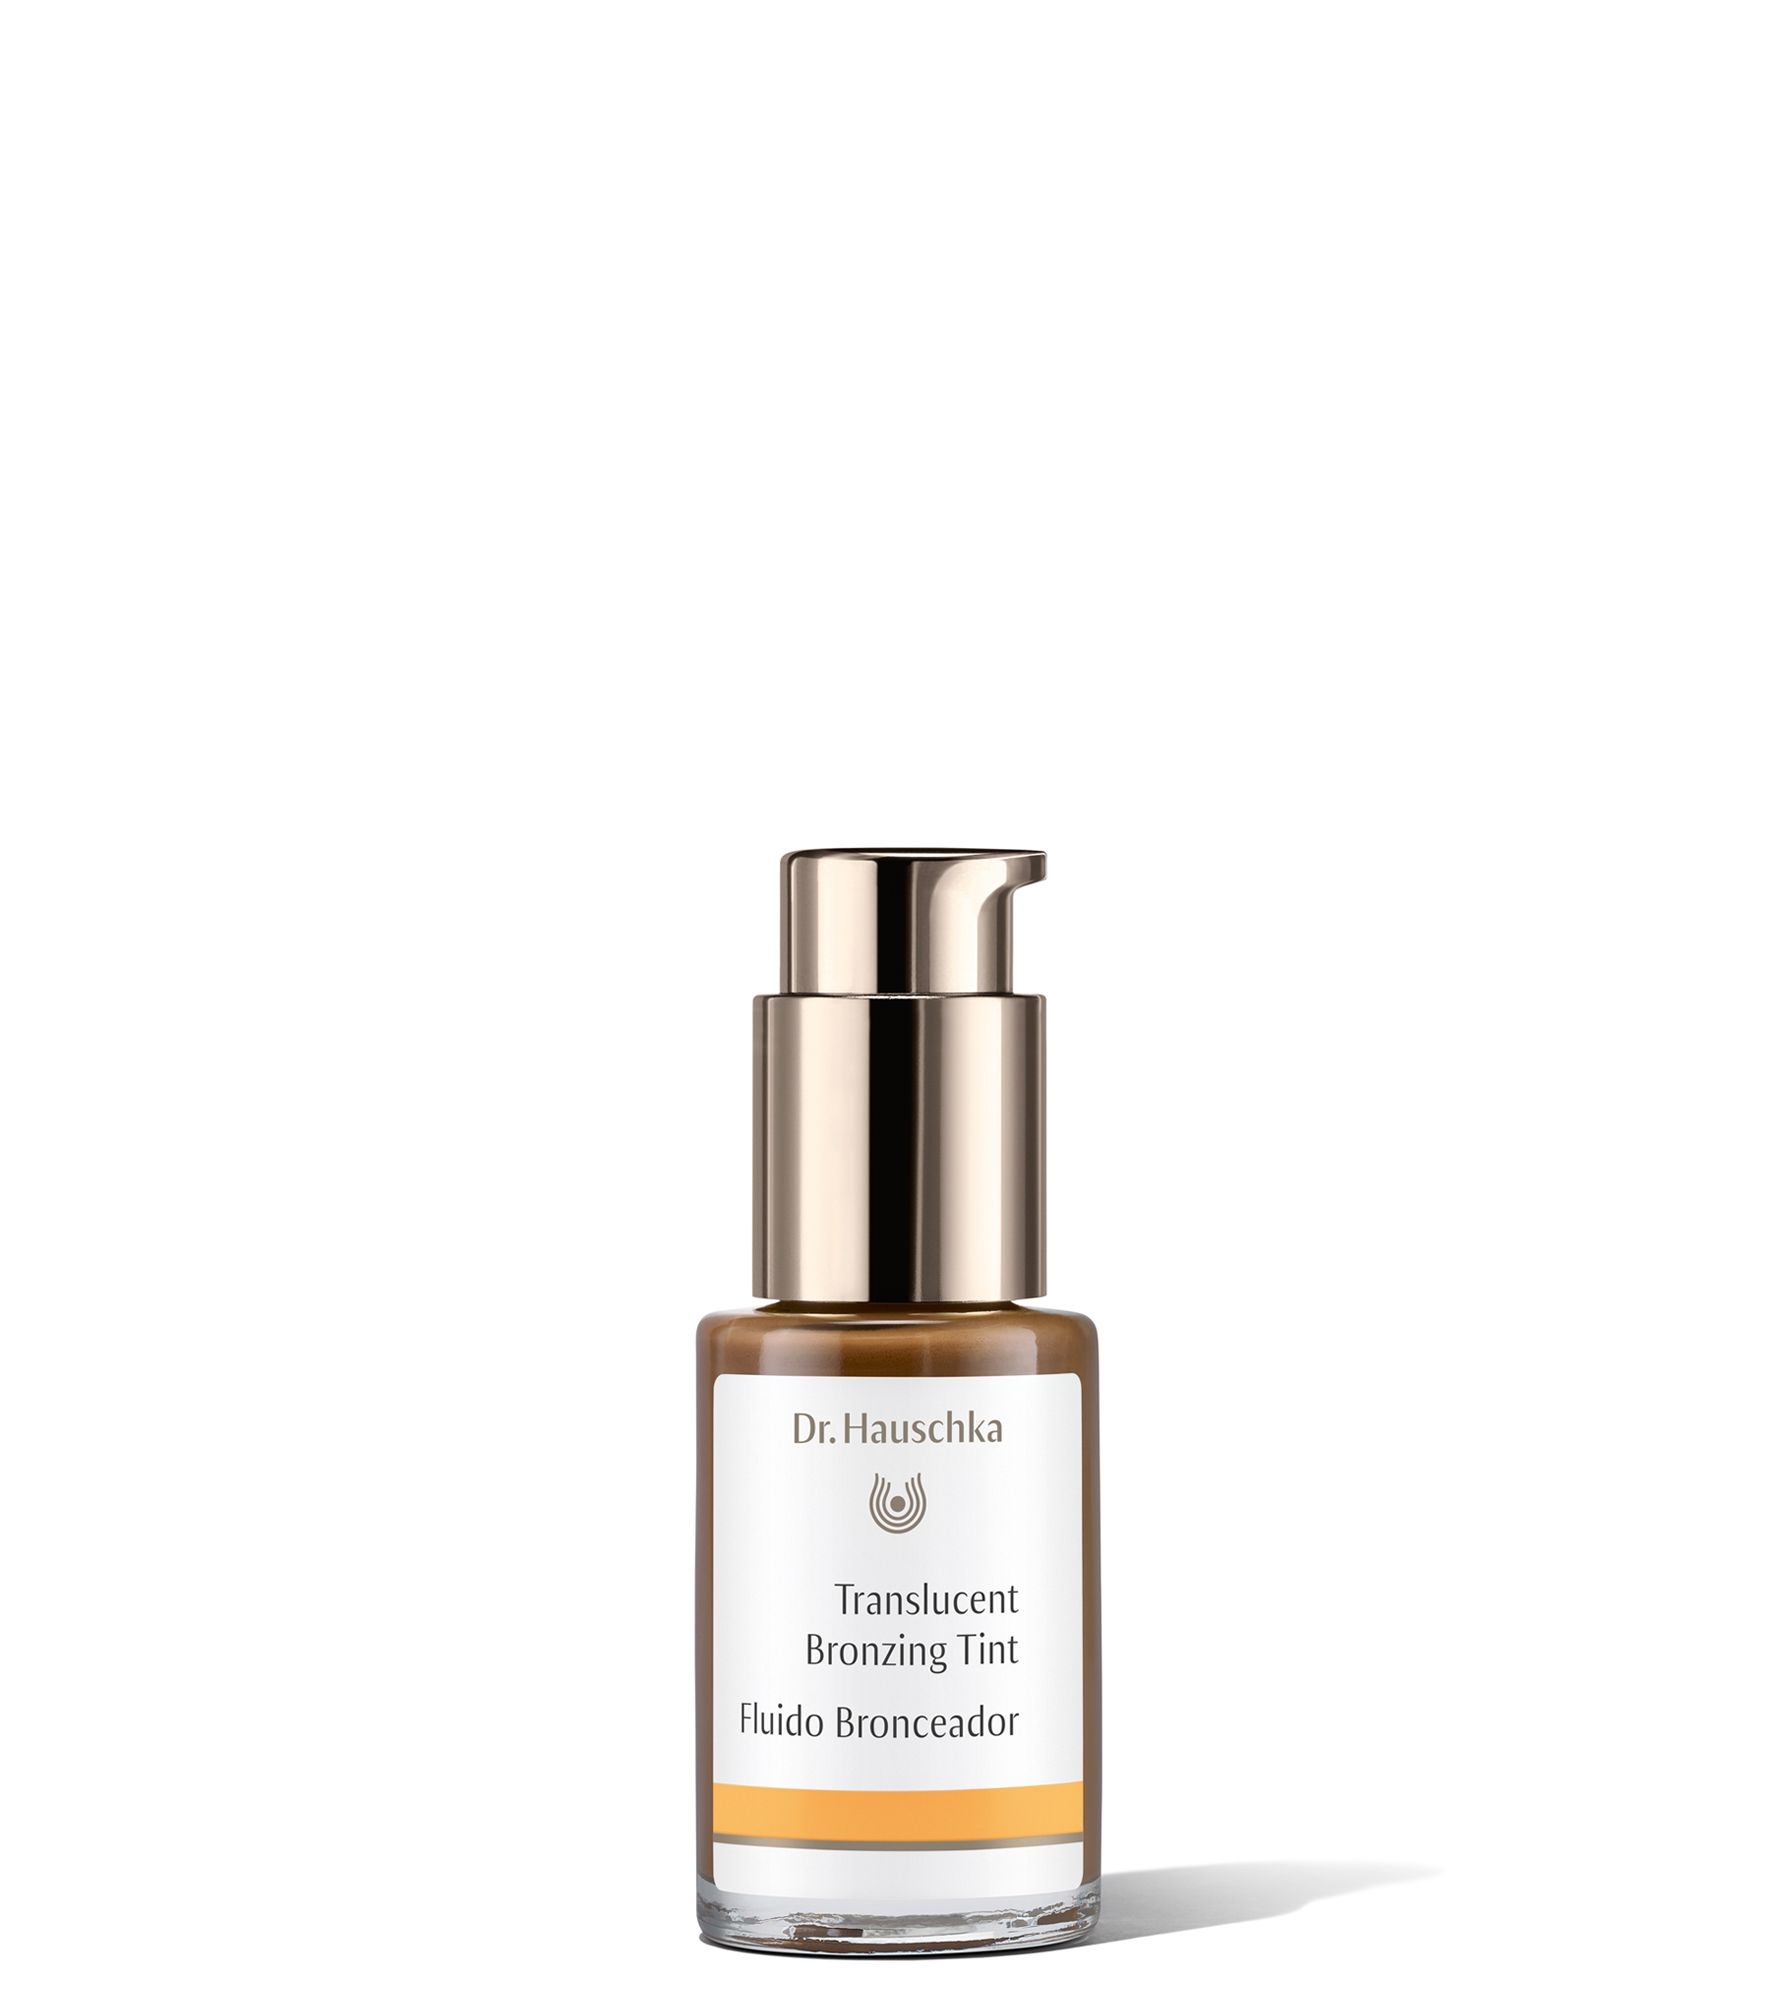 Dr Hauschka S Translucent Bronzing Tint It Offers Up A Beautiful Glow With The Least Amount Of Effort Ever Plus Dr Hauschka Pale Skin Hair Color Bronzing